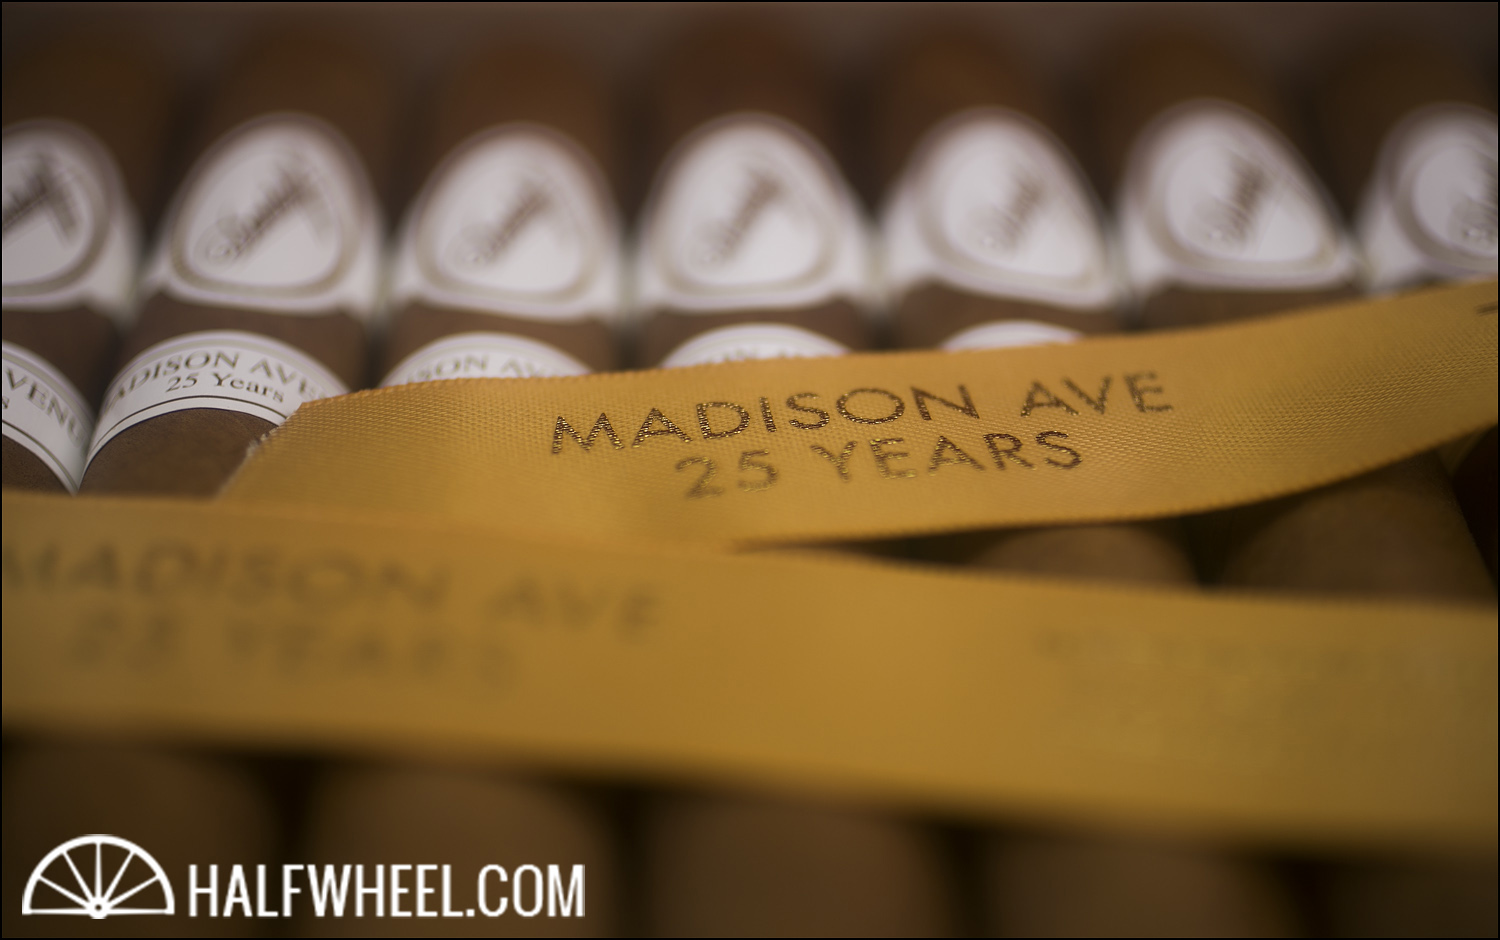 Davidoff Madison Avenue 25th Anniversary Box 4